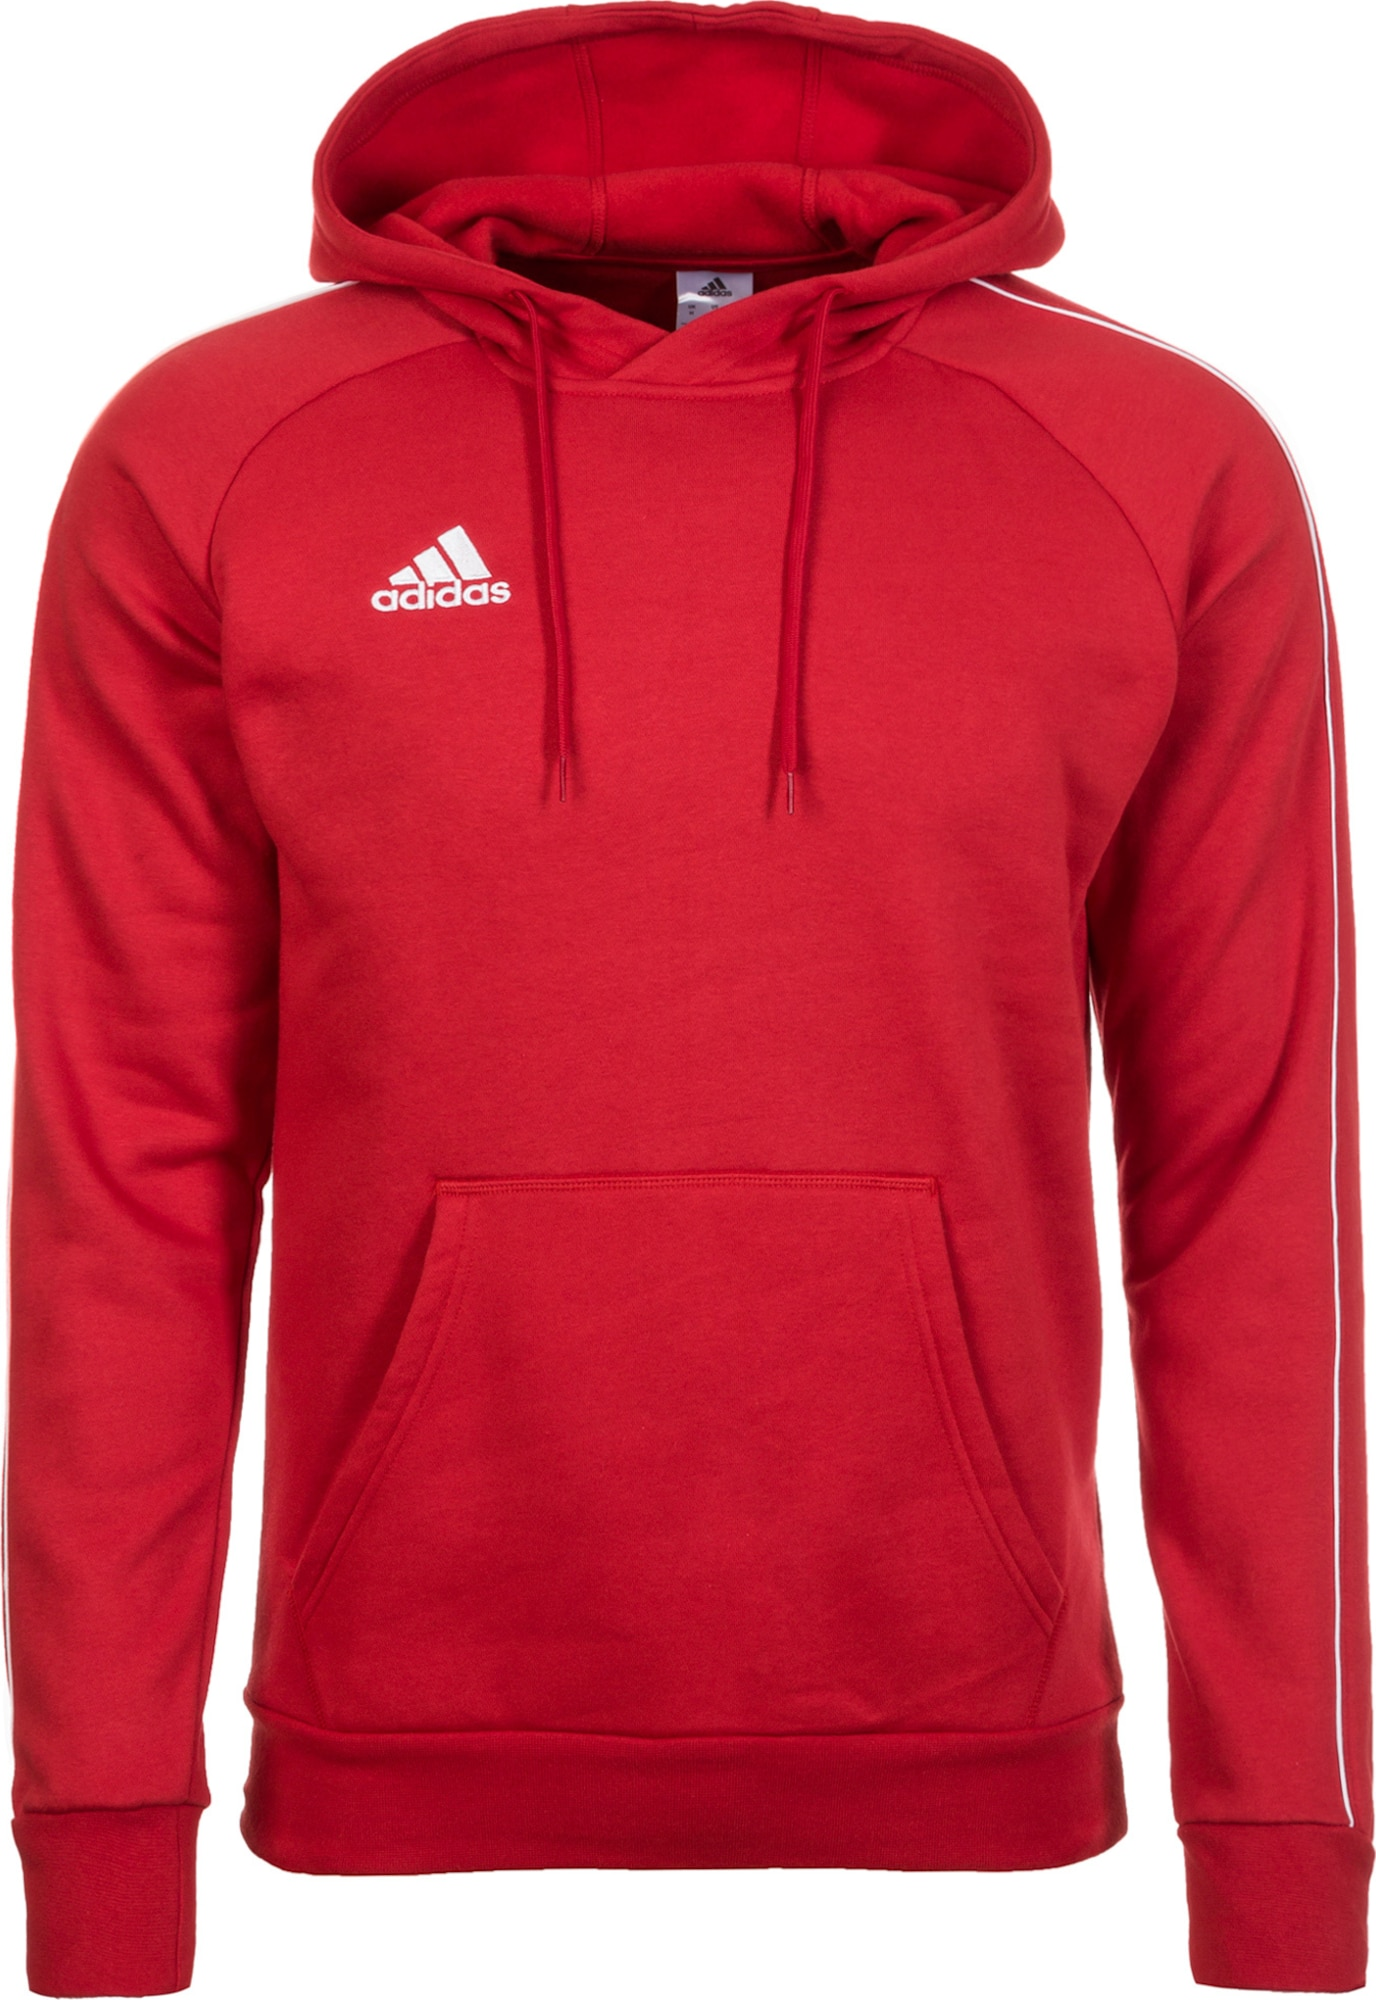 adidas performance 39 core 18 39 kapuzenpullover herren in rot about you. Black Bedroom Furniture Sets. Home Design Ideas